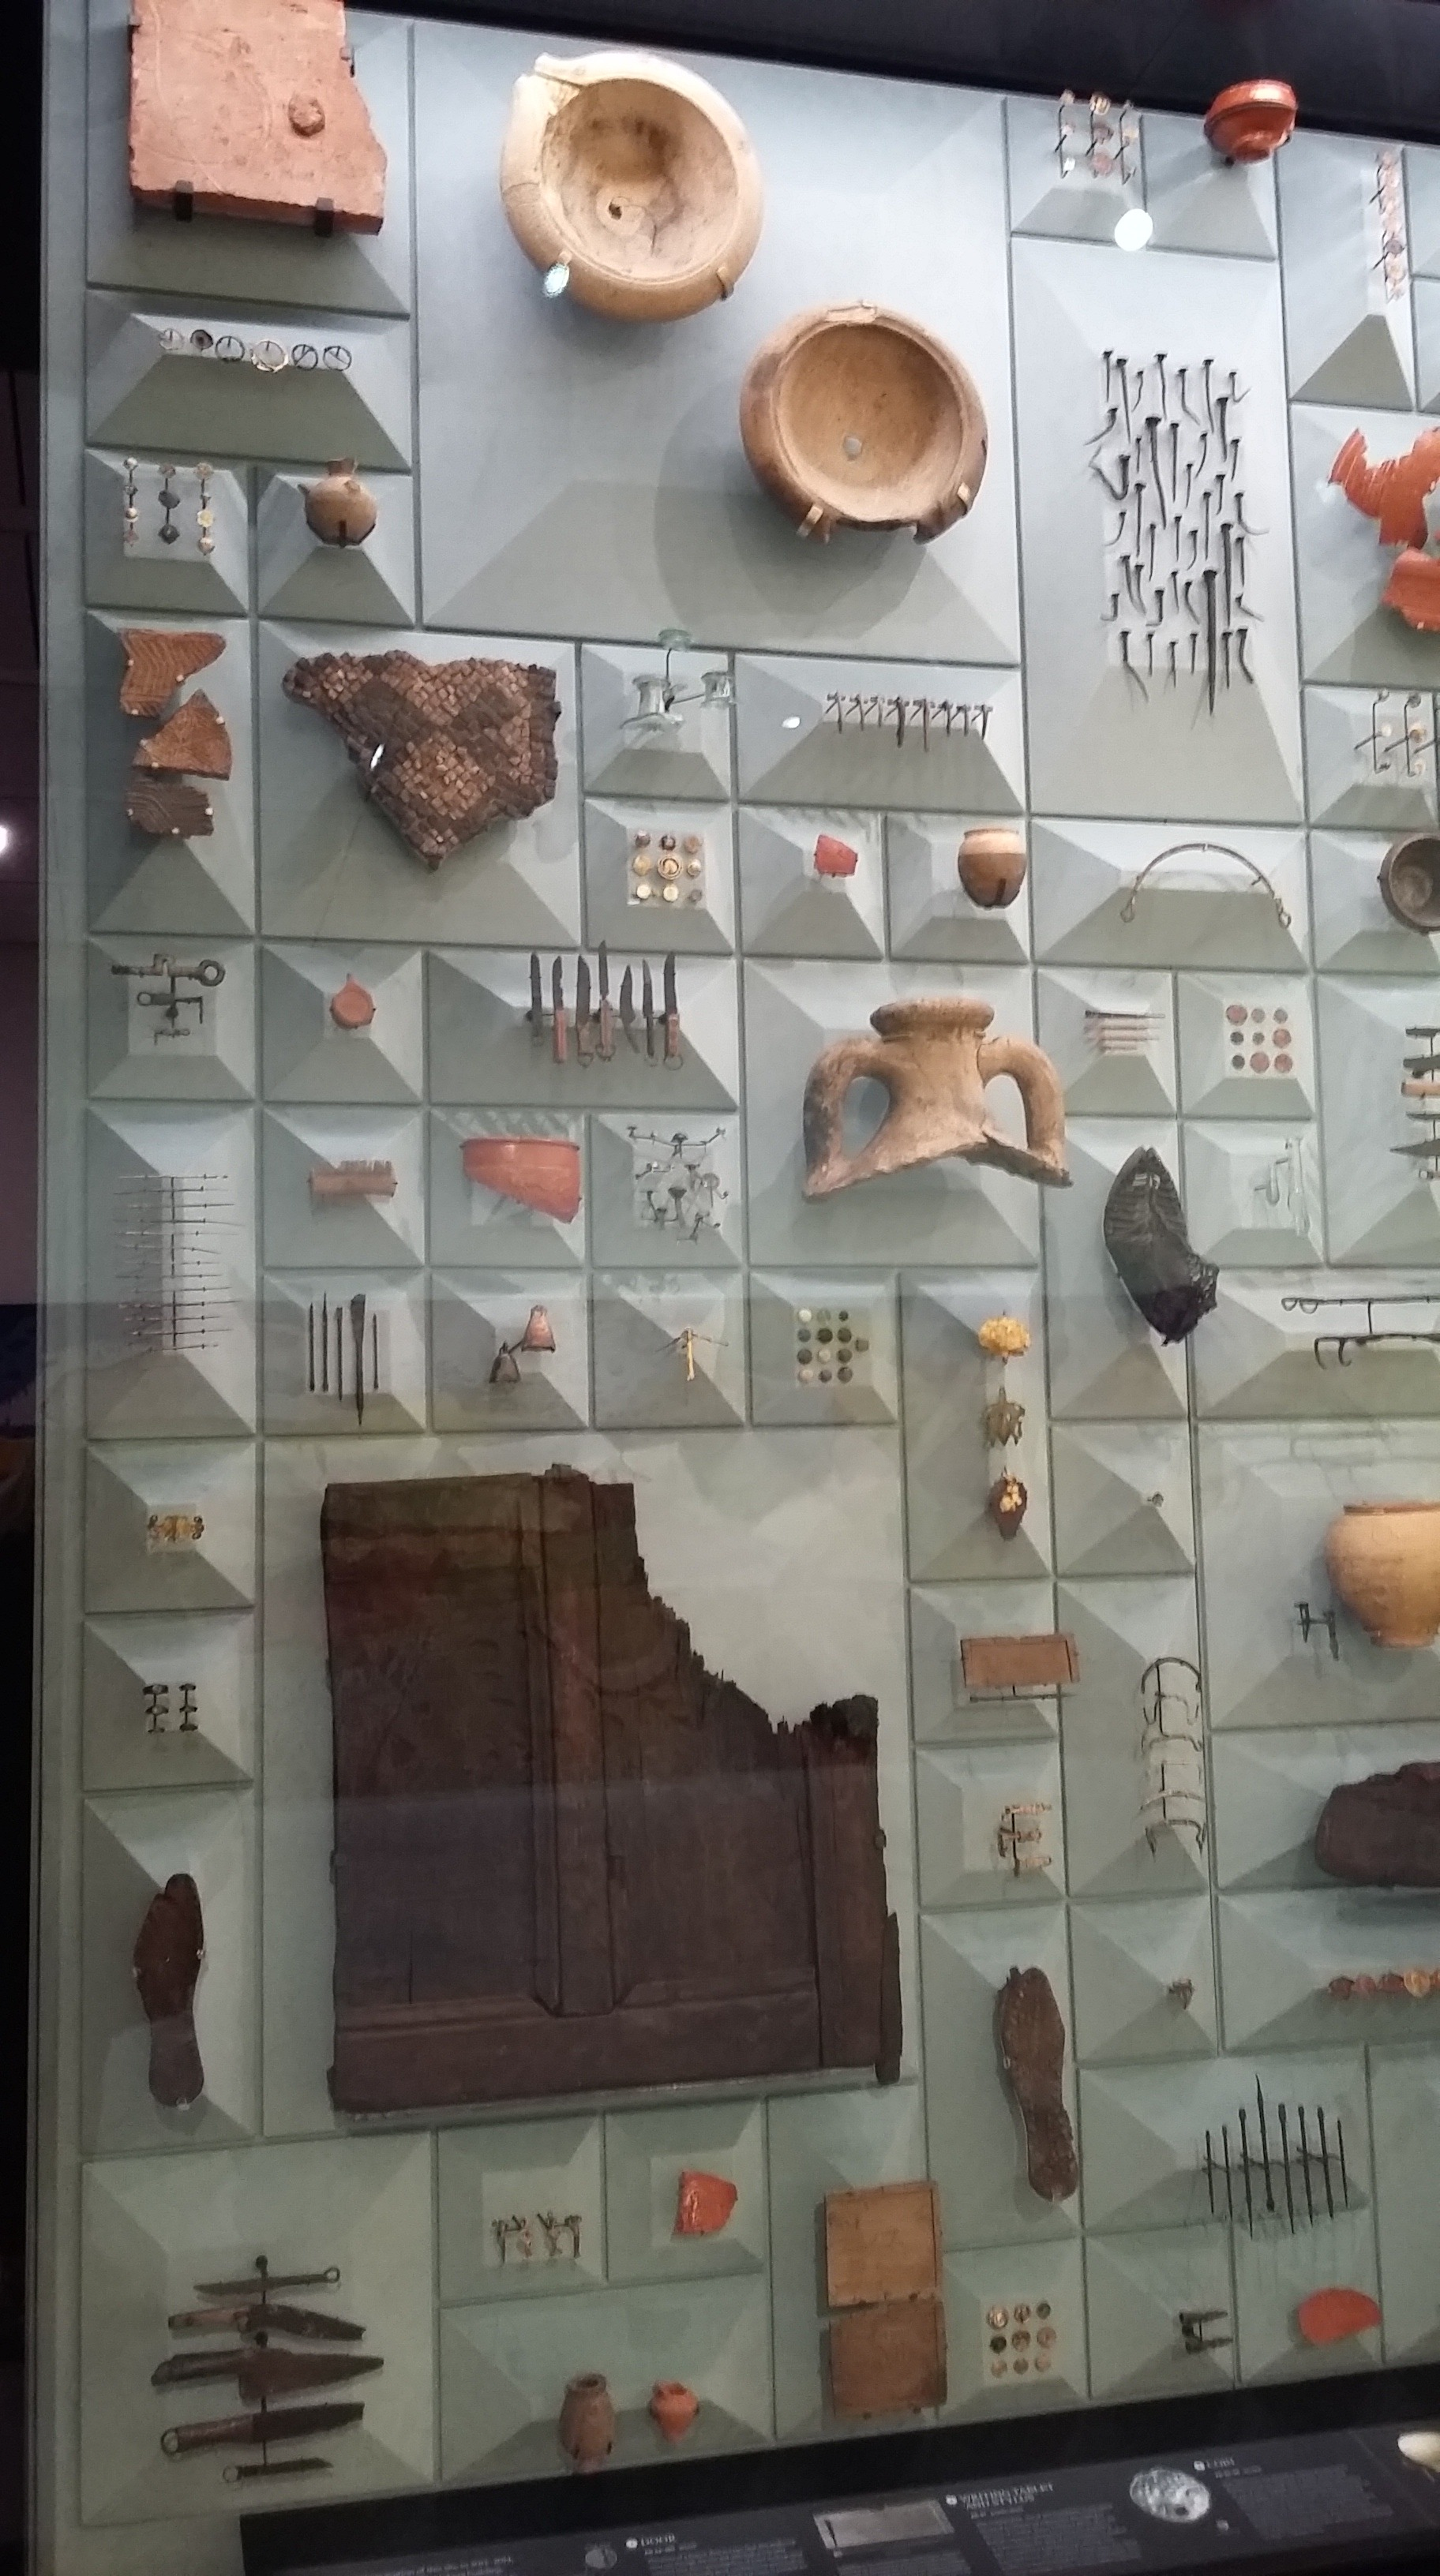 Display of Roman artefacts found during the excavation